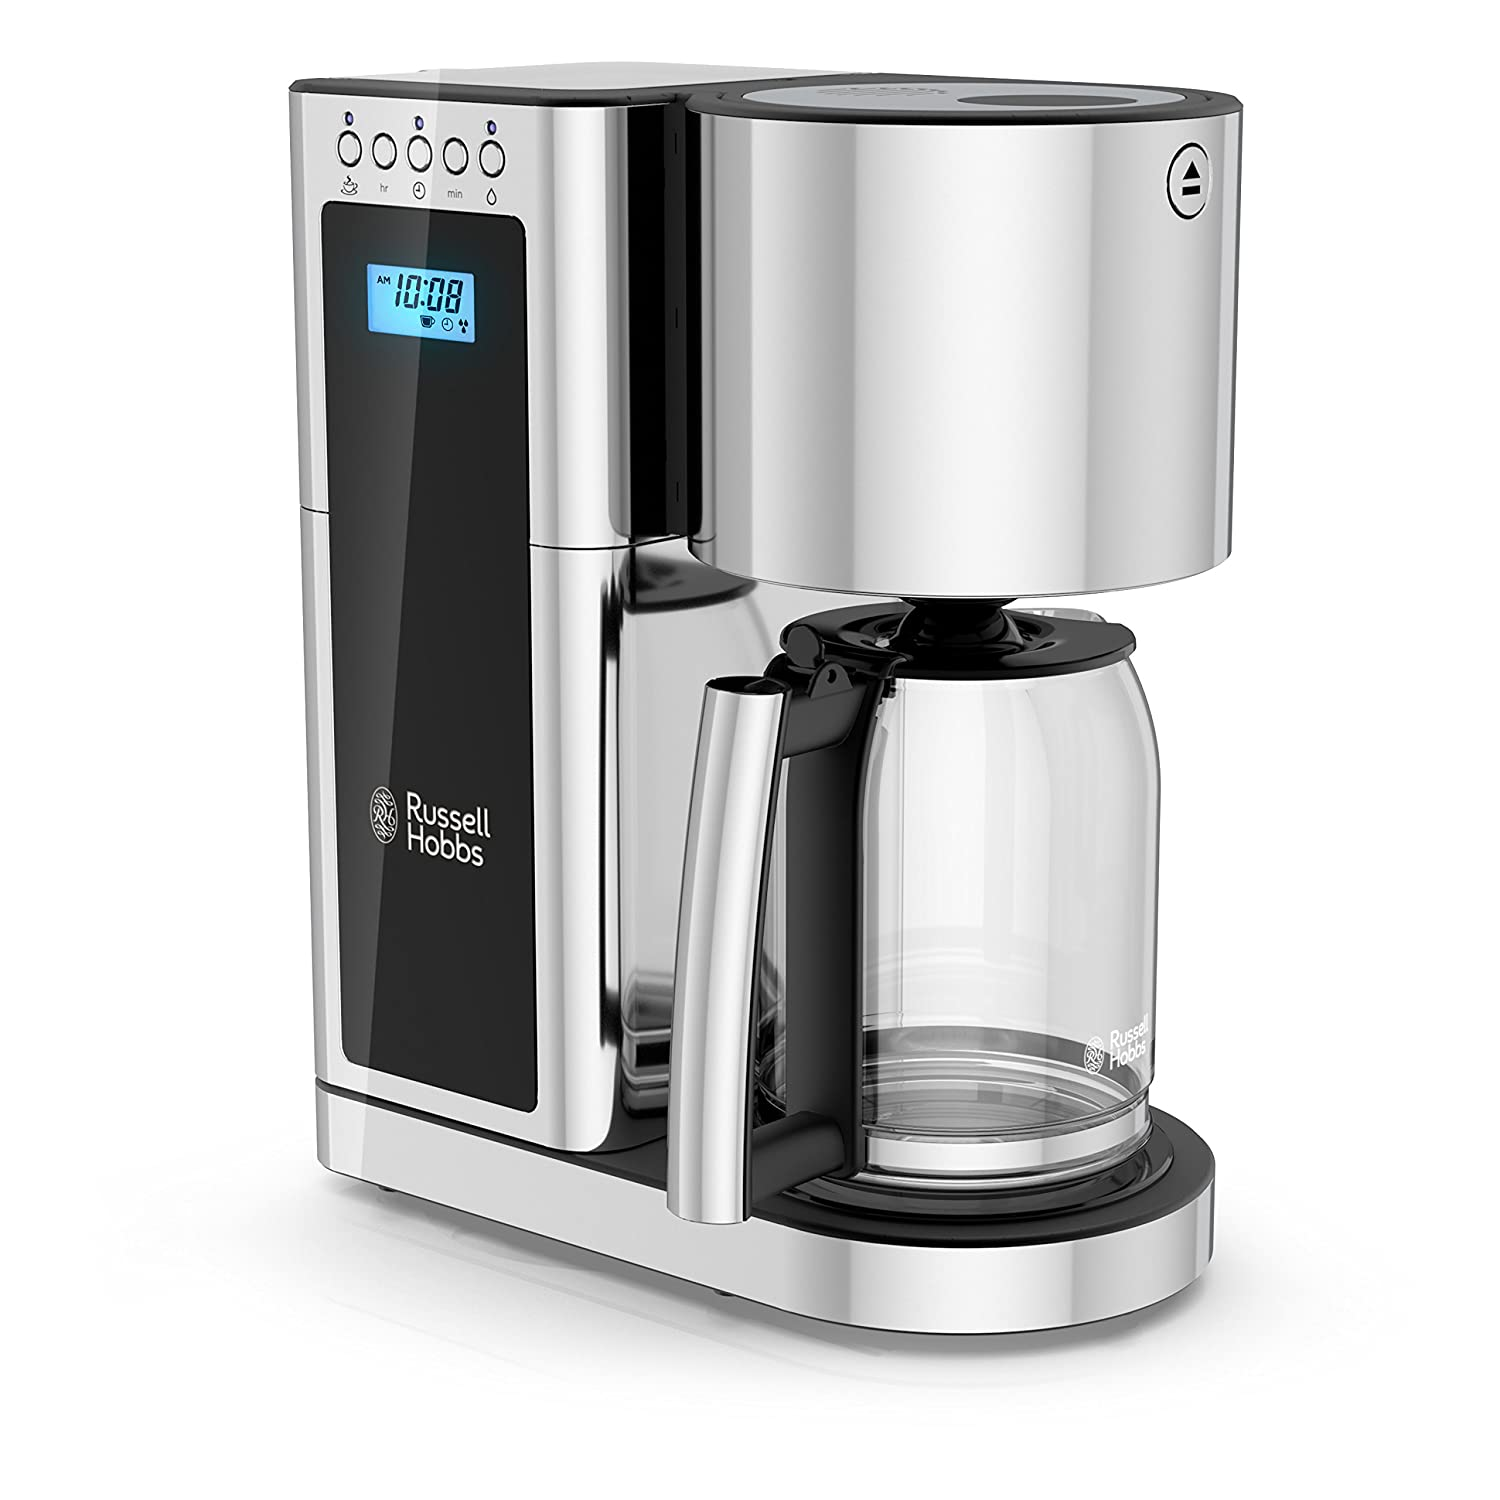 Russell Hobbs Glass Series 8-Cup Coffeemaker, Black & Stainless Steel, CM8100BKR